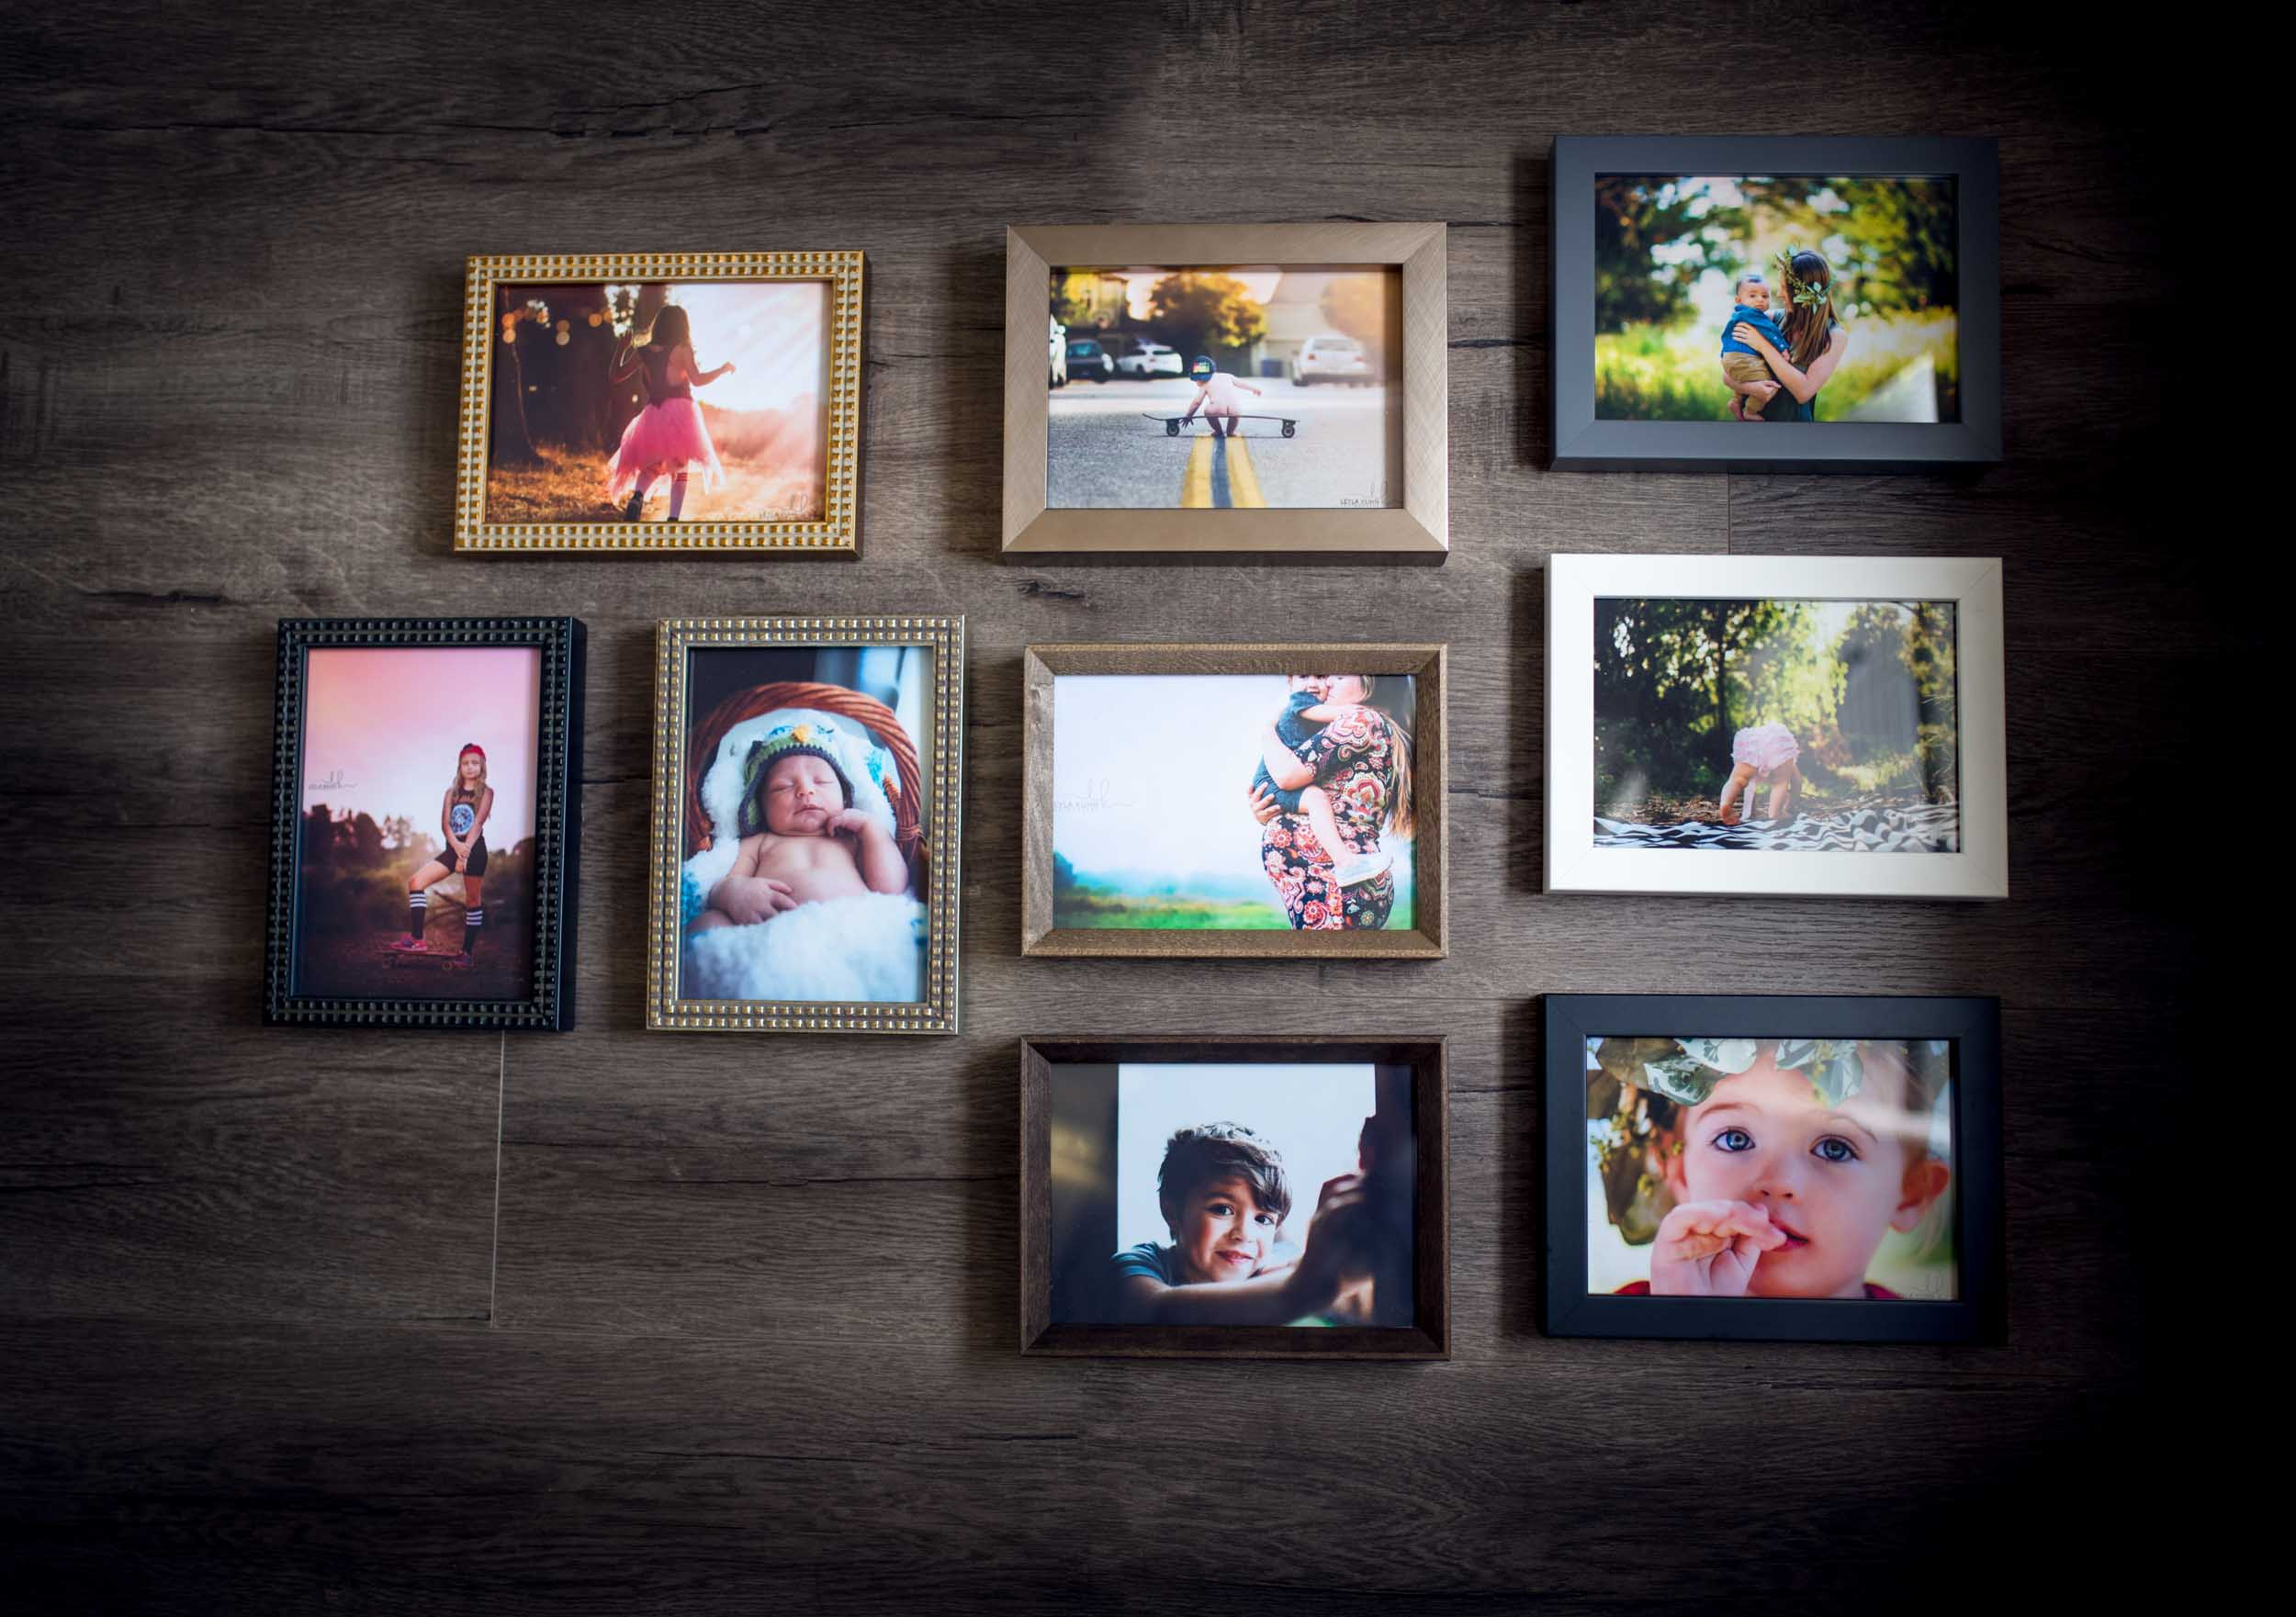 Framed Prints - My frames are made by people, not machines in Portland, Oregon. The archival construction and considered style of the frames will without a doubt preserve your photographs and beautifully accent any decor.Framed prints begin at $125 and are ready to display and add life to your home.